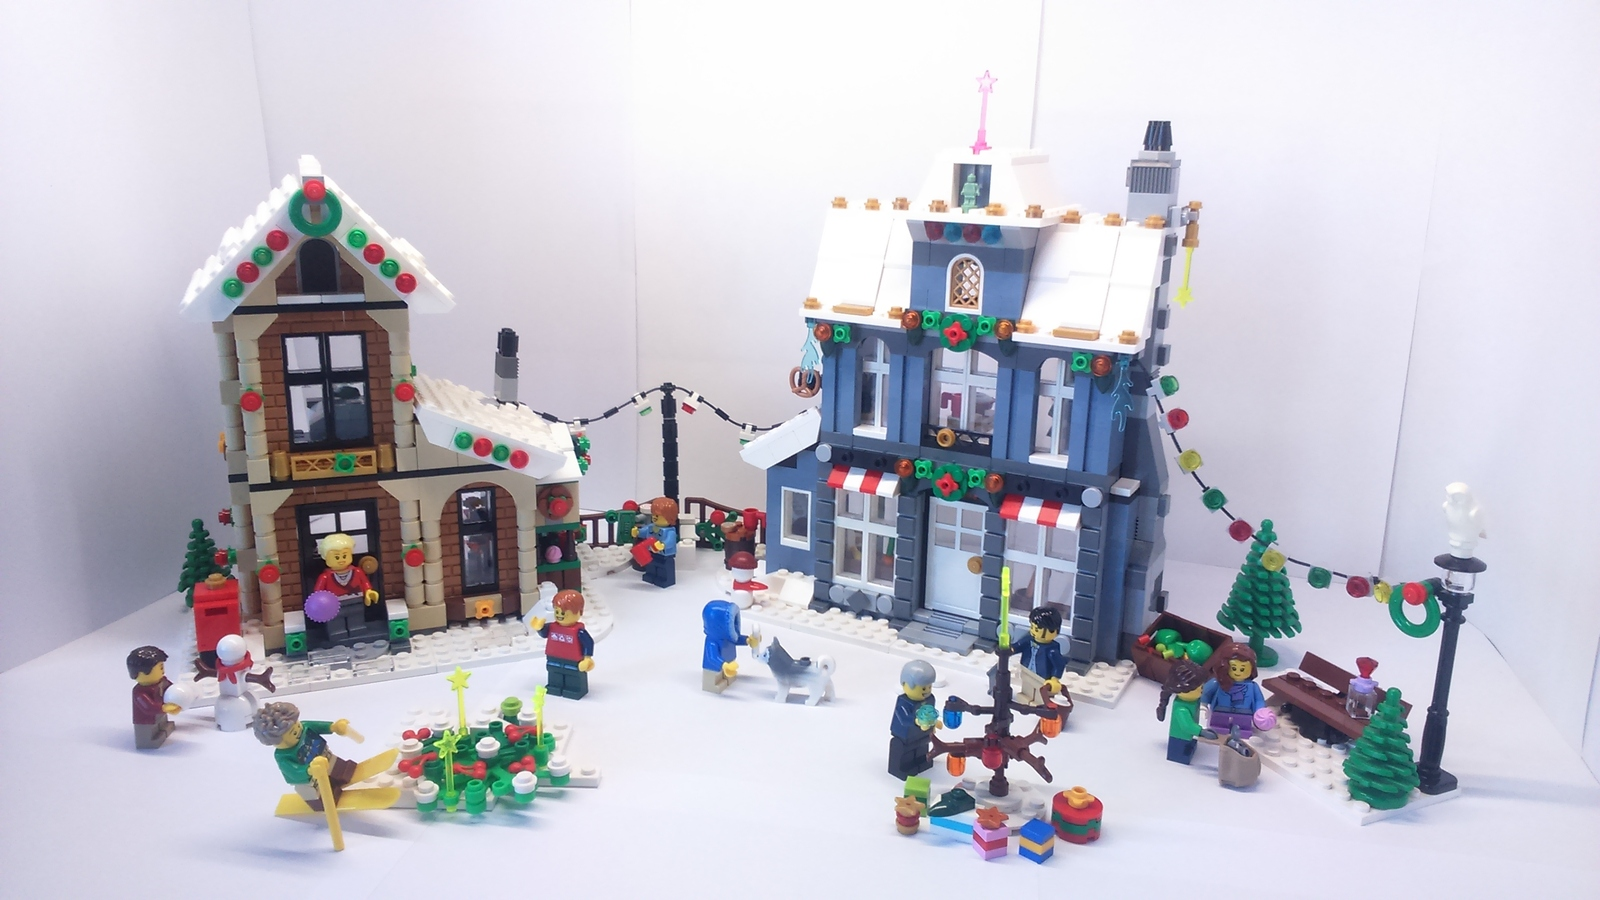 the winter village